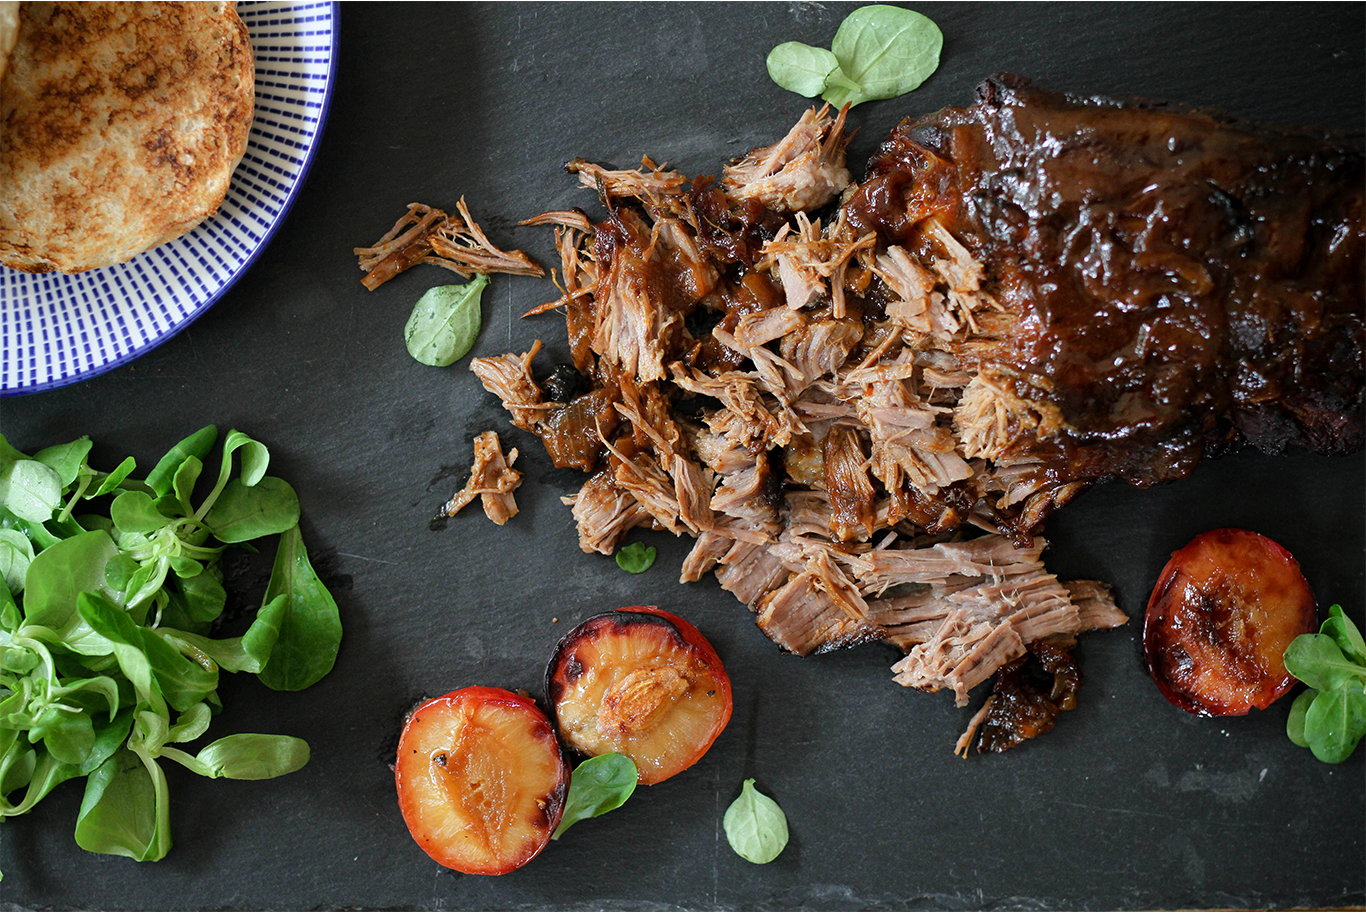 pulled pork on a black slate serving slab with lambs lettuce, toasted buns and caramelised plums